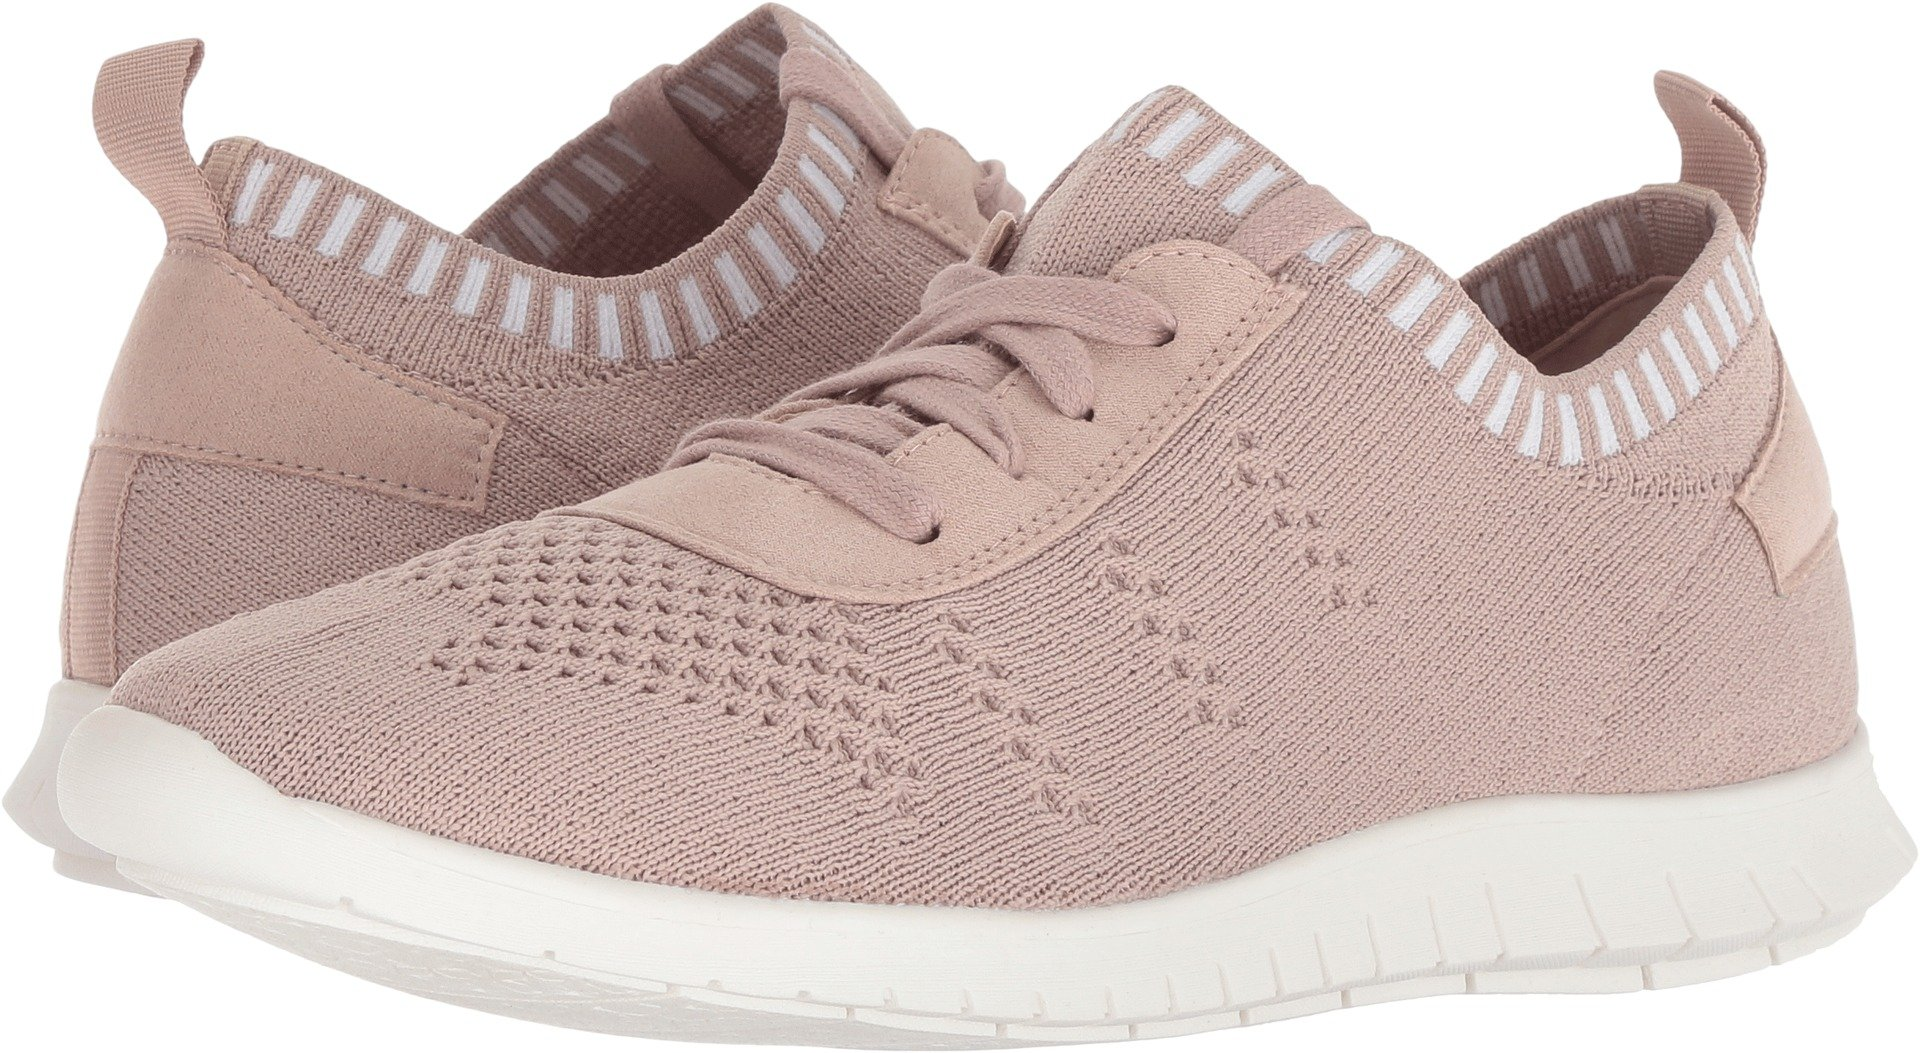 Steve Madden Women's Jei Blush 8 M US